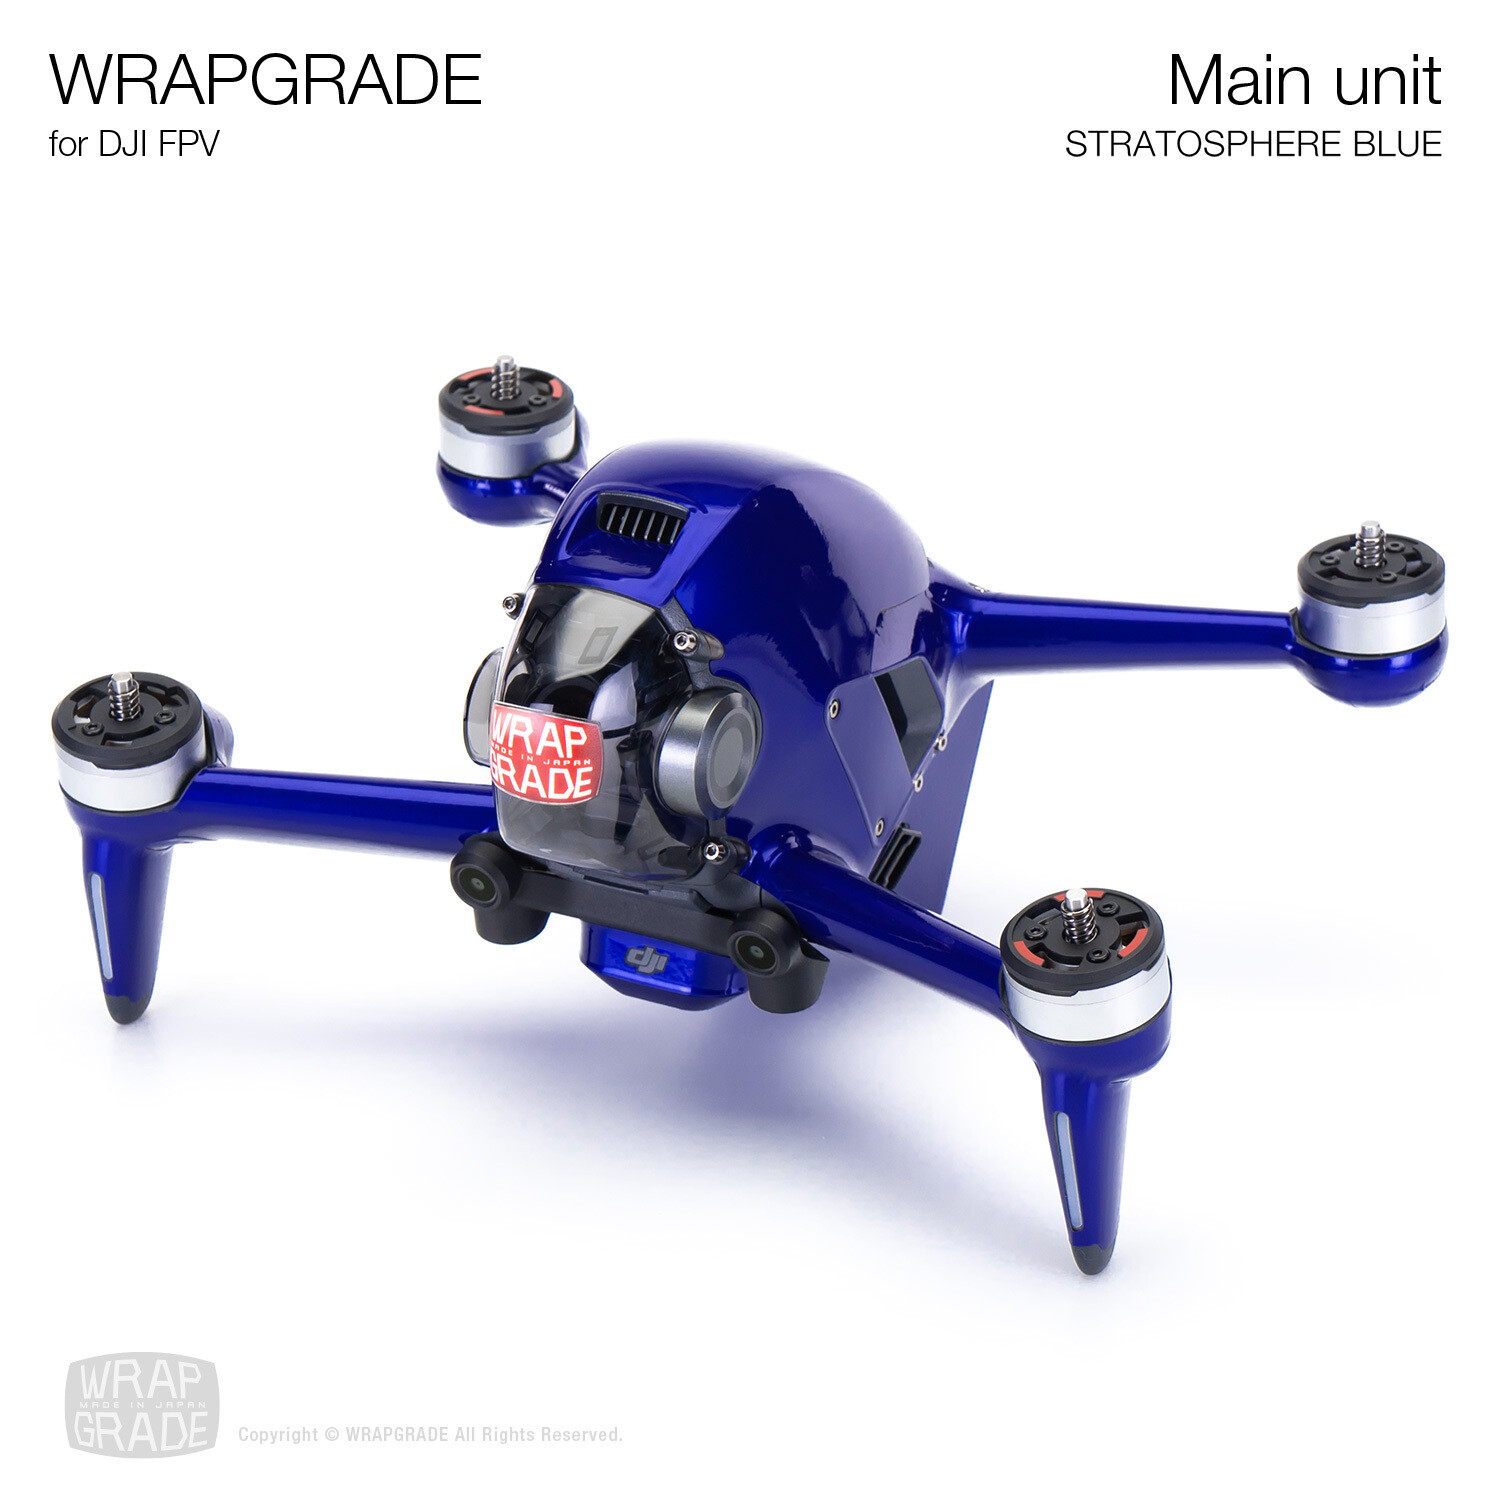 WRAPGRADE for DJI FPV | Drone (STRATOSPHERE BLUE)